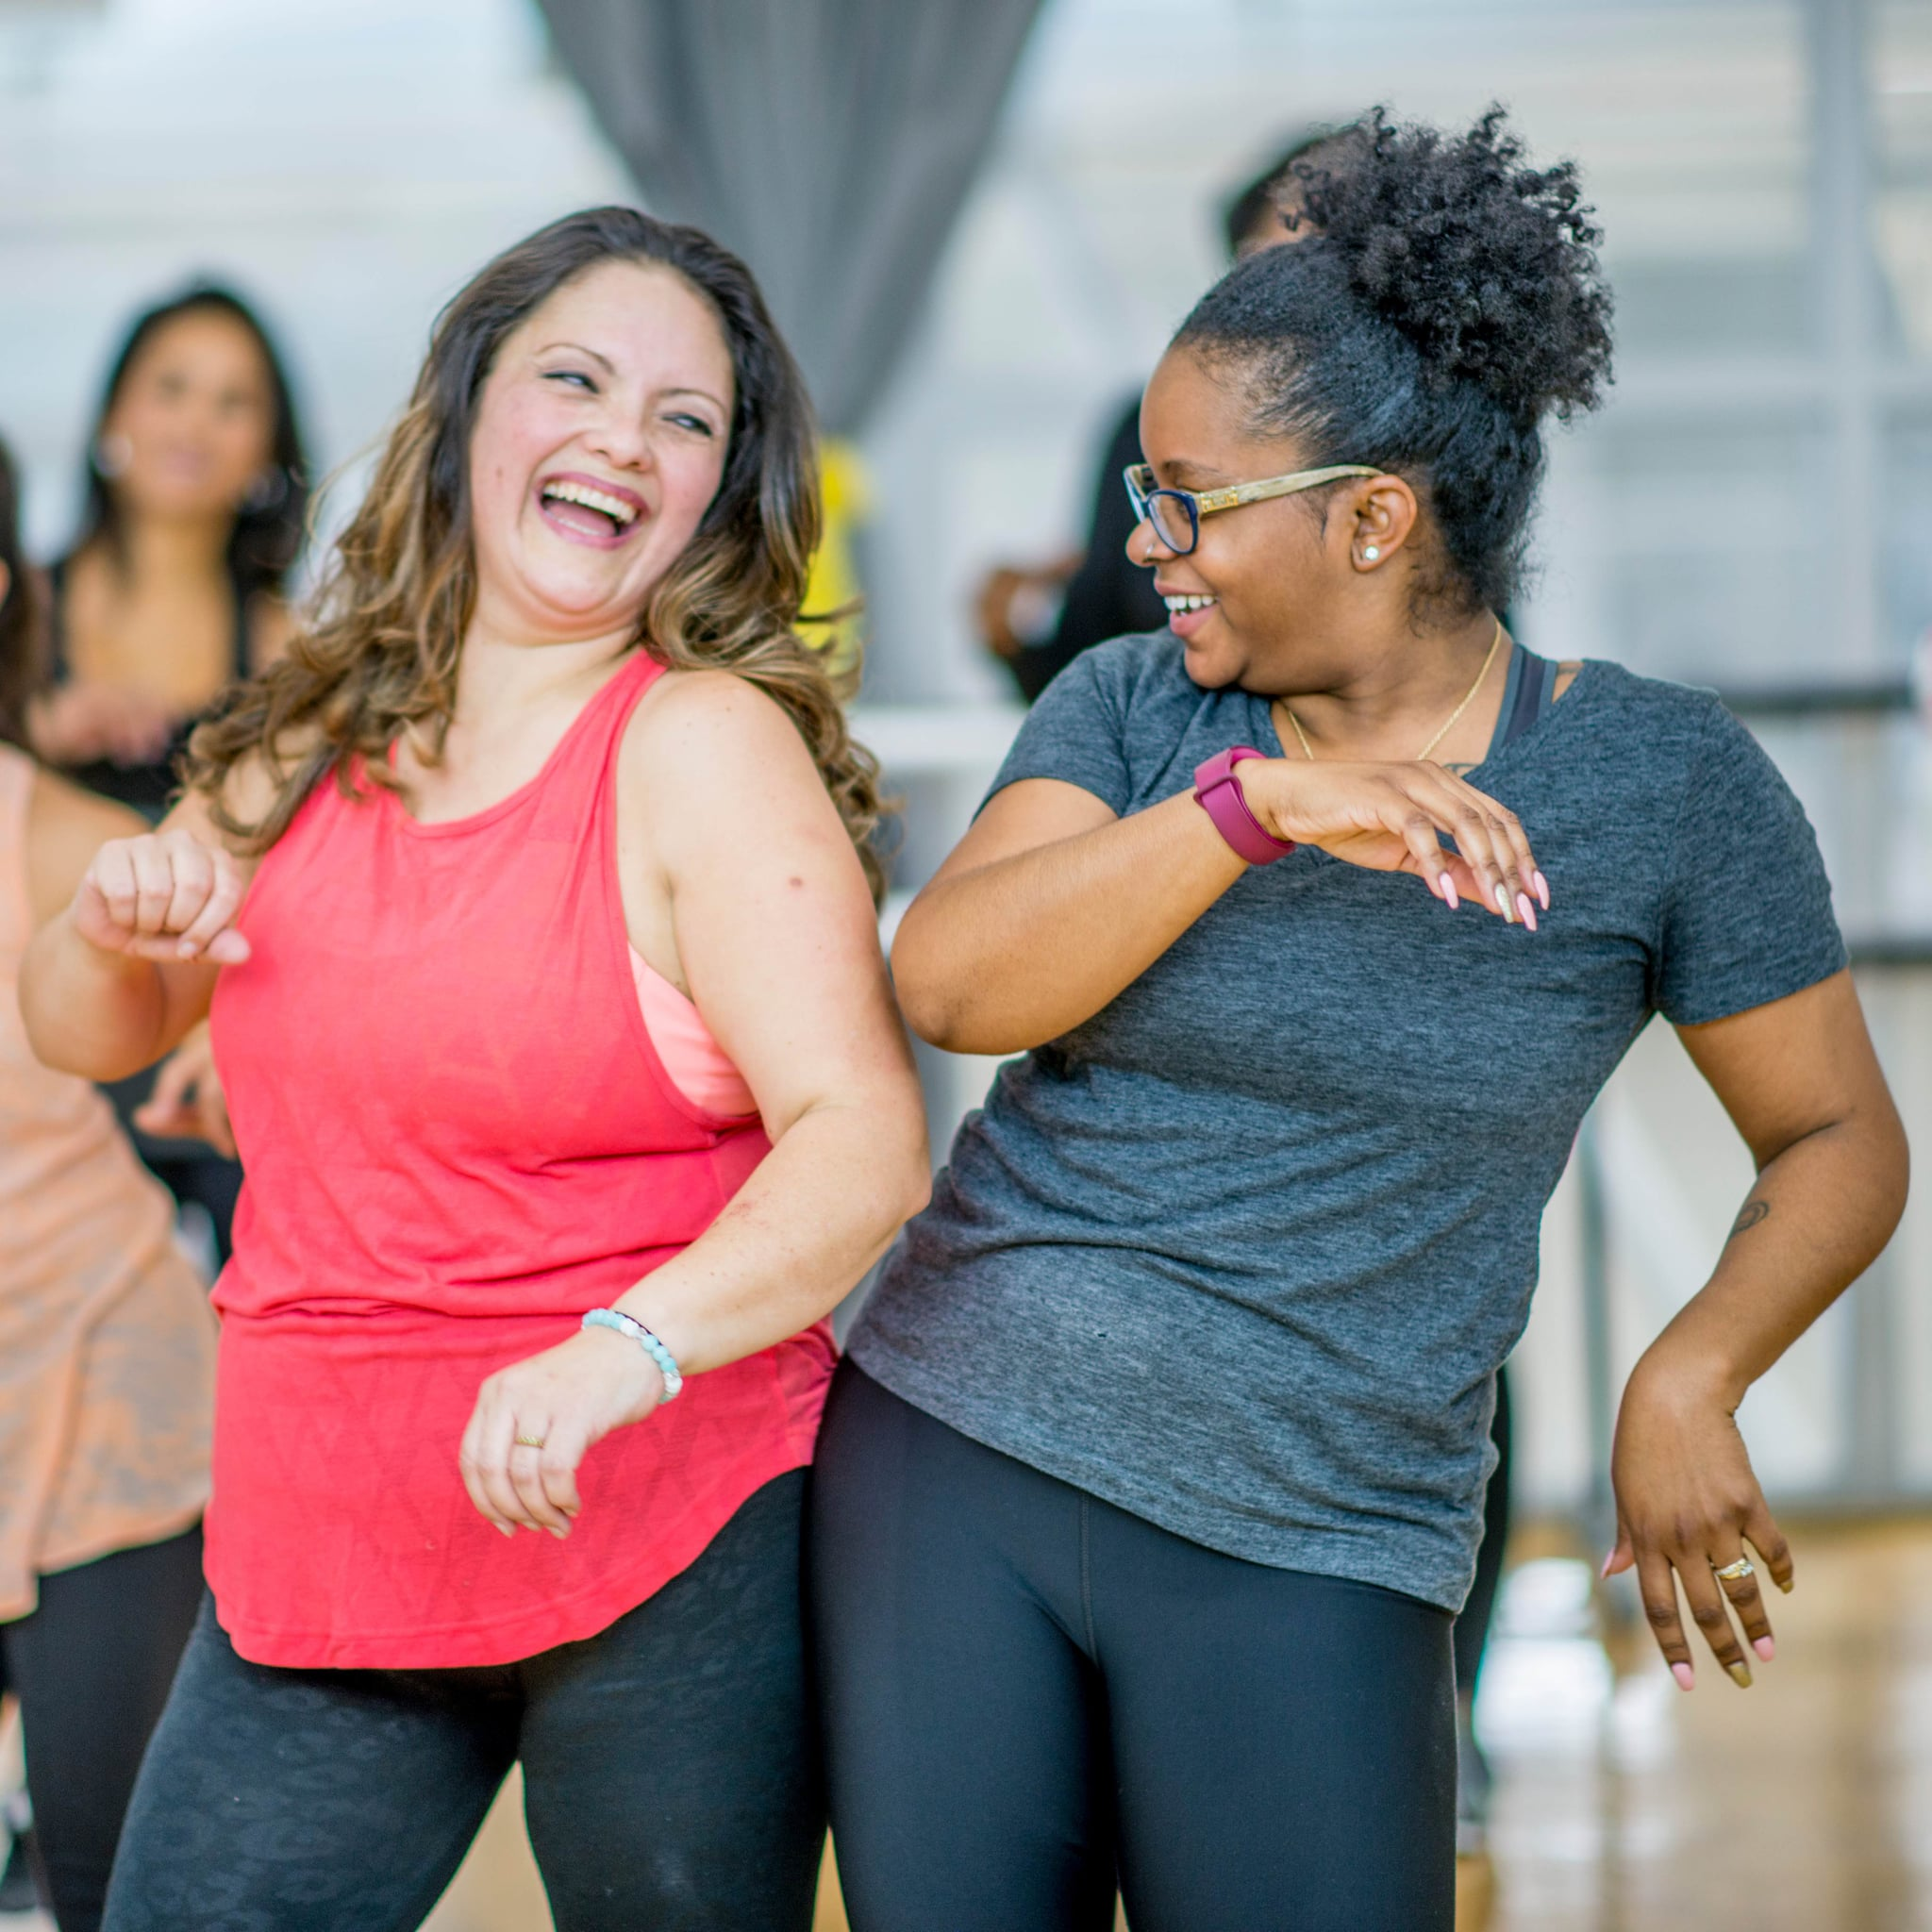 free dance workout videos for beginners